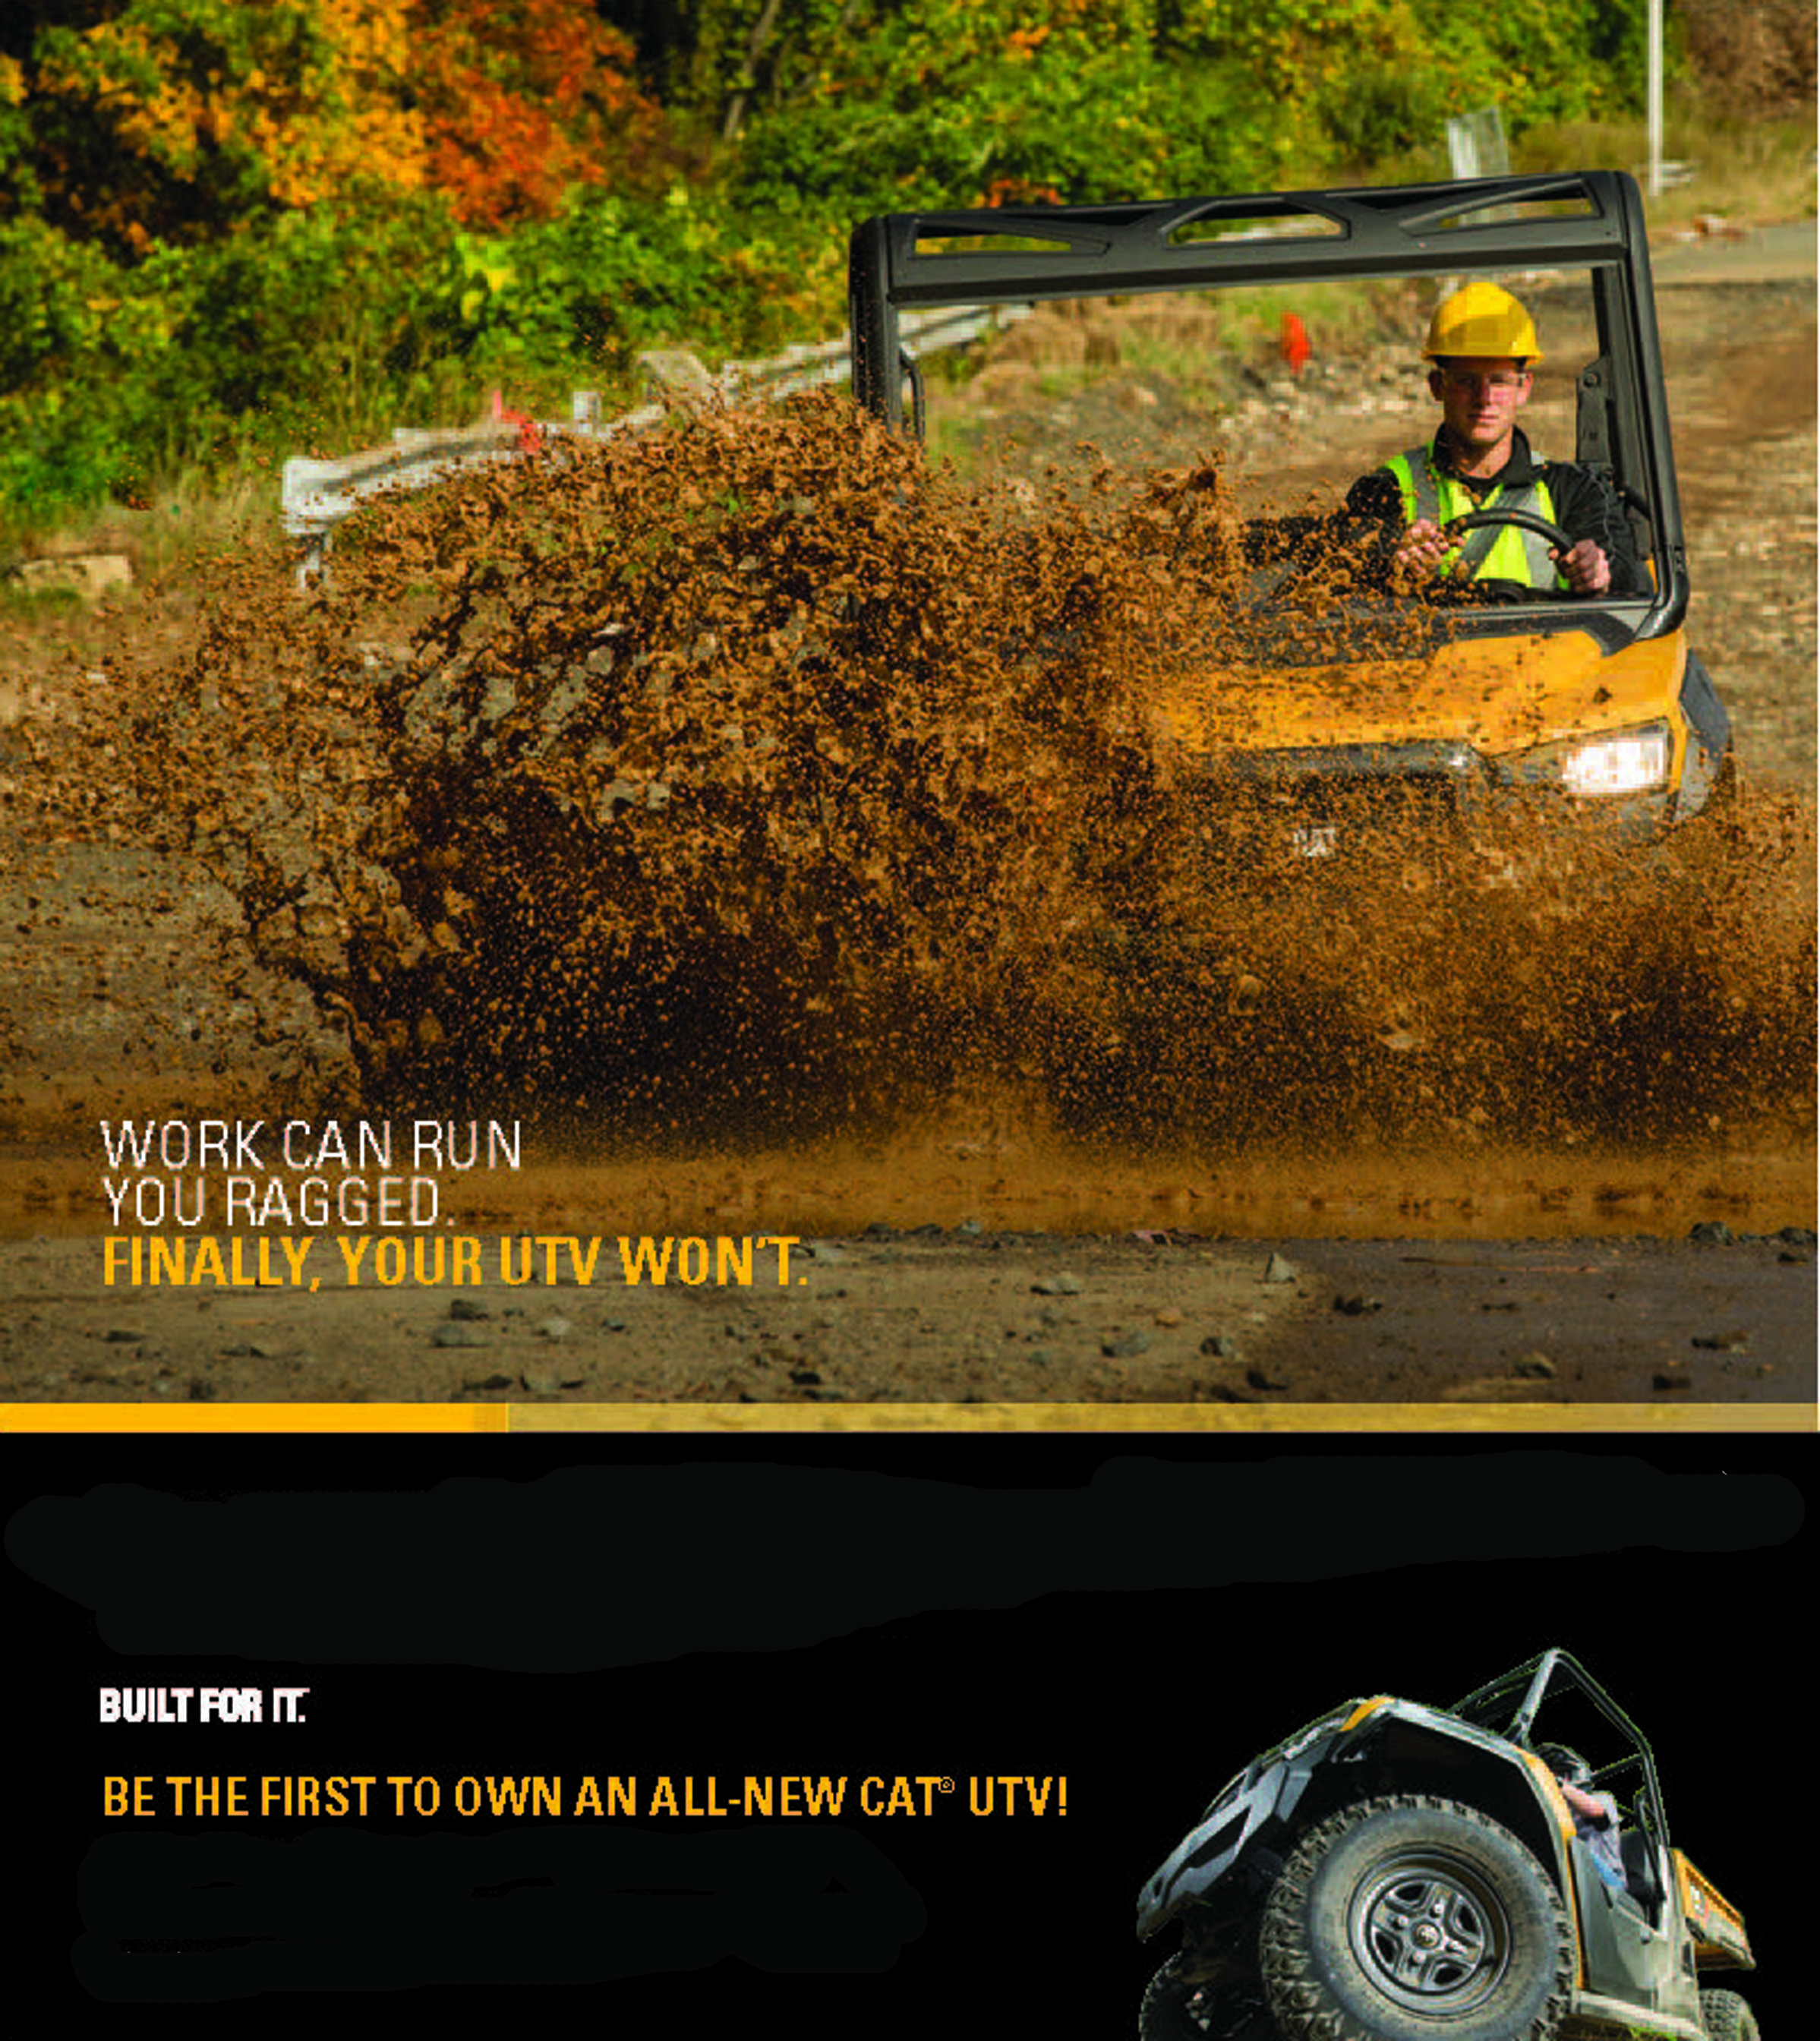 2018-utv-print-ad-now-available-construction-2-2